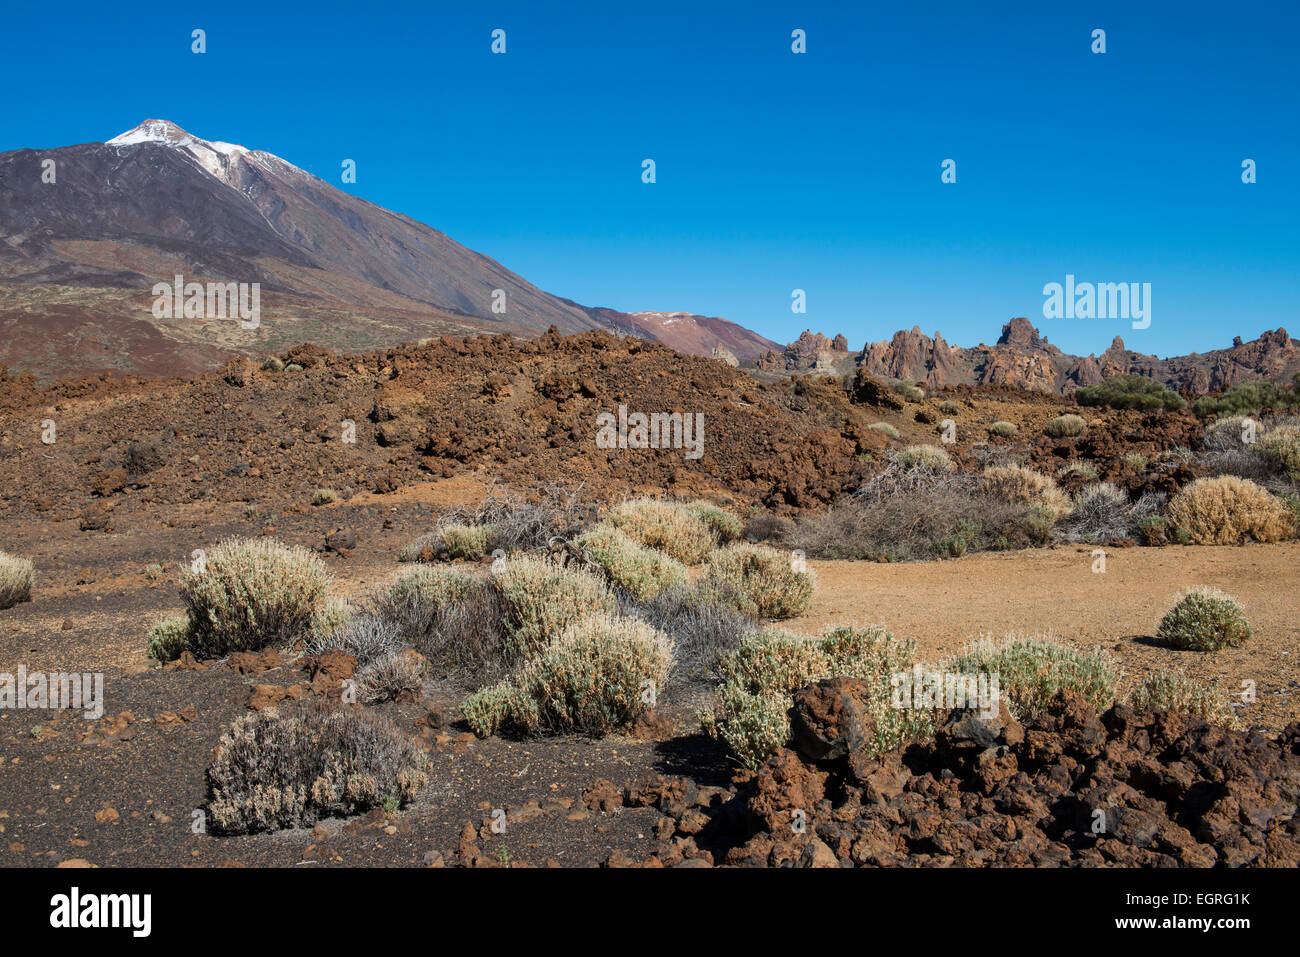 Lava Field with bushes El Teide on the island of Tenerife in Spain. - Stock Image